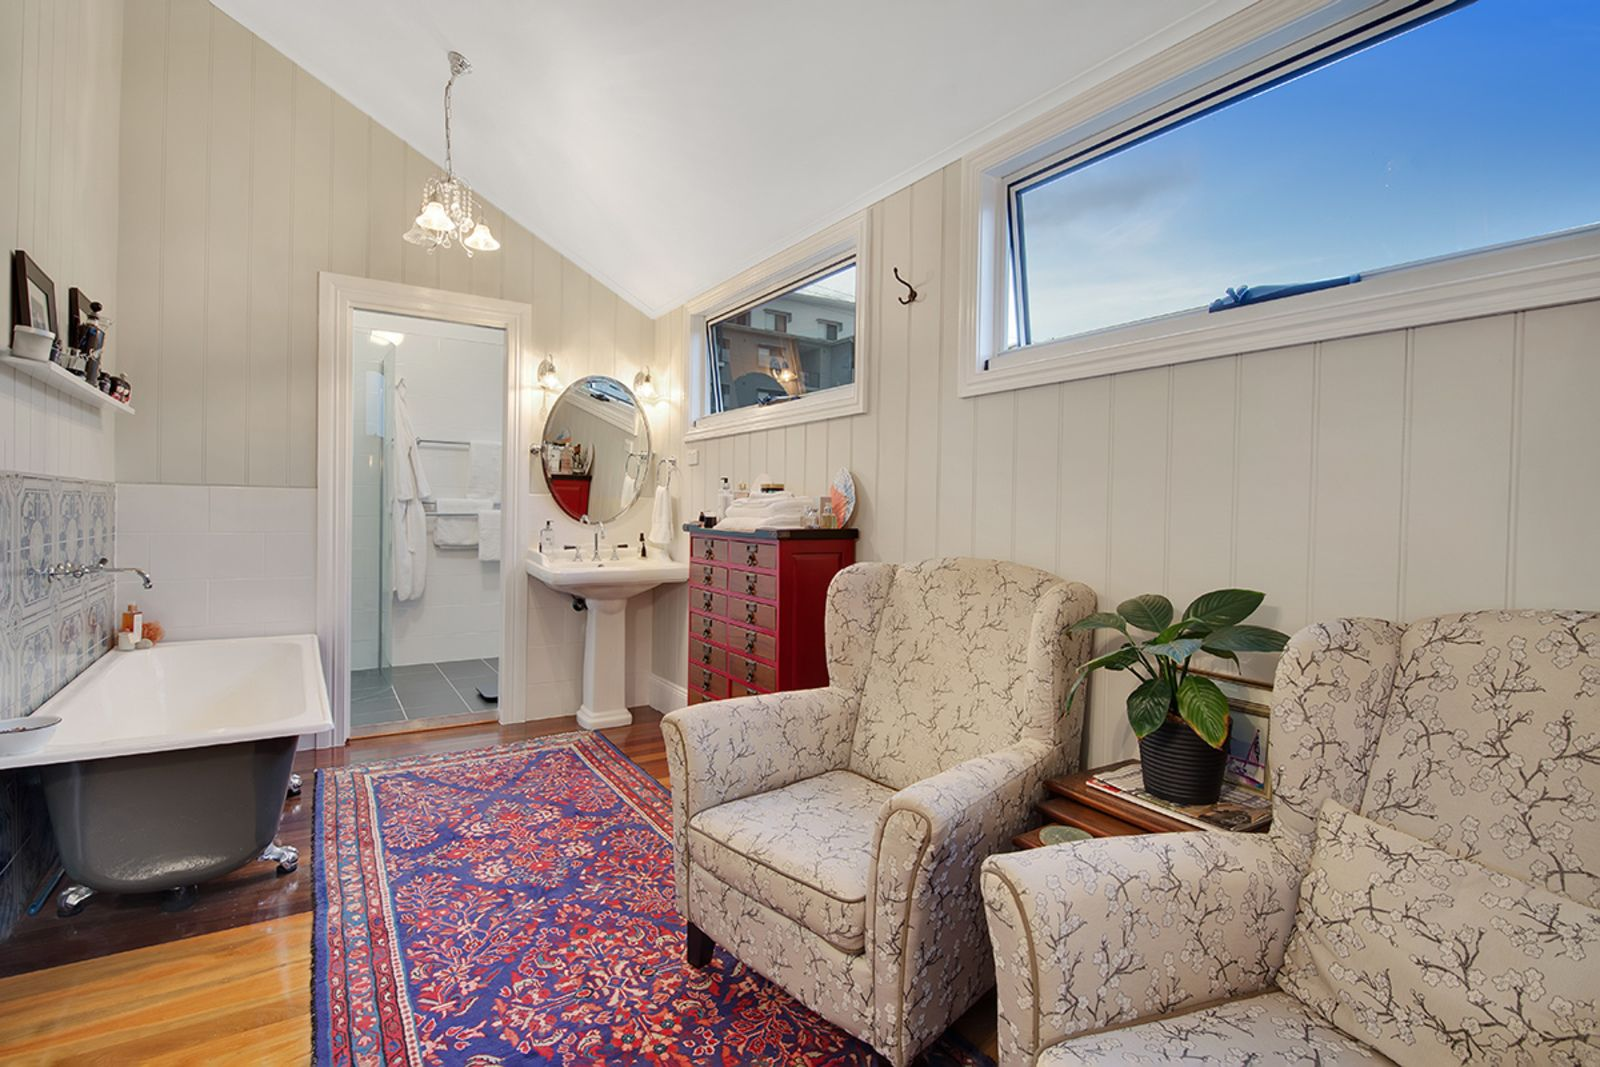 46 Florrie Street, Lutwyche QLD 4030 - Belle Property Australasia